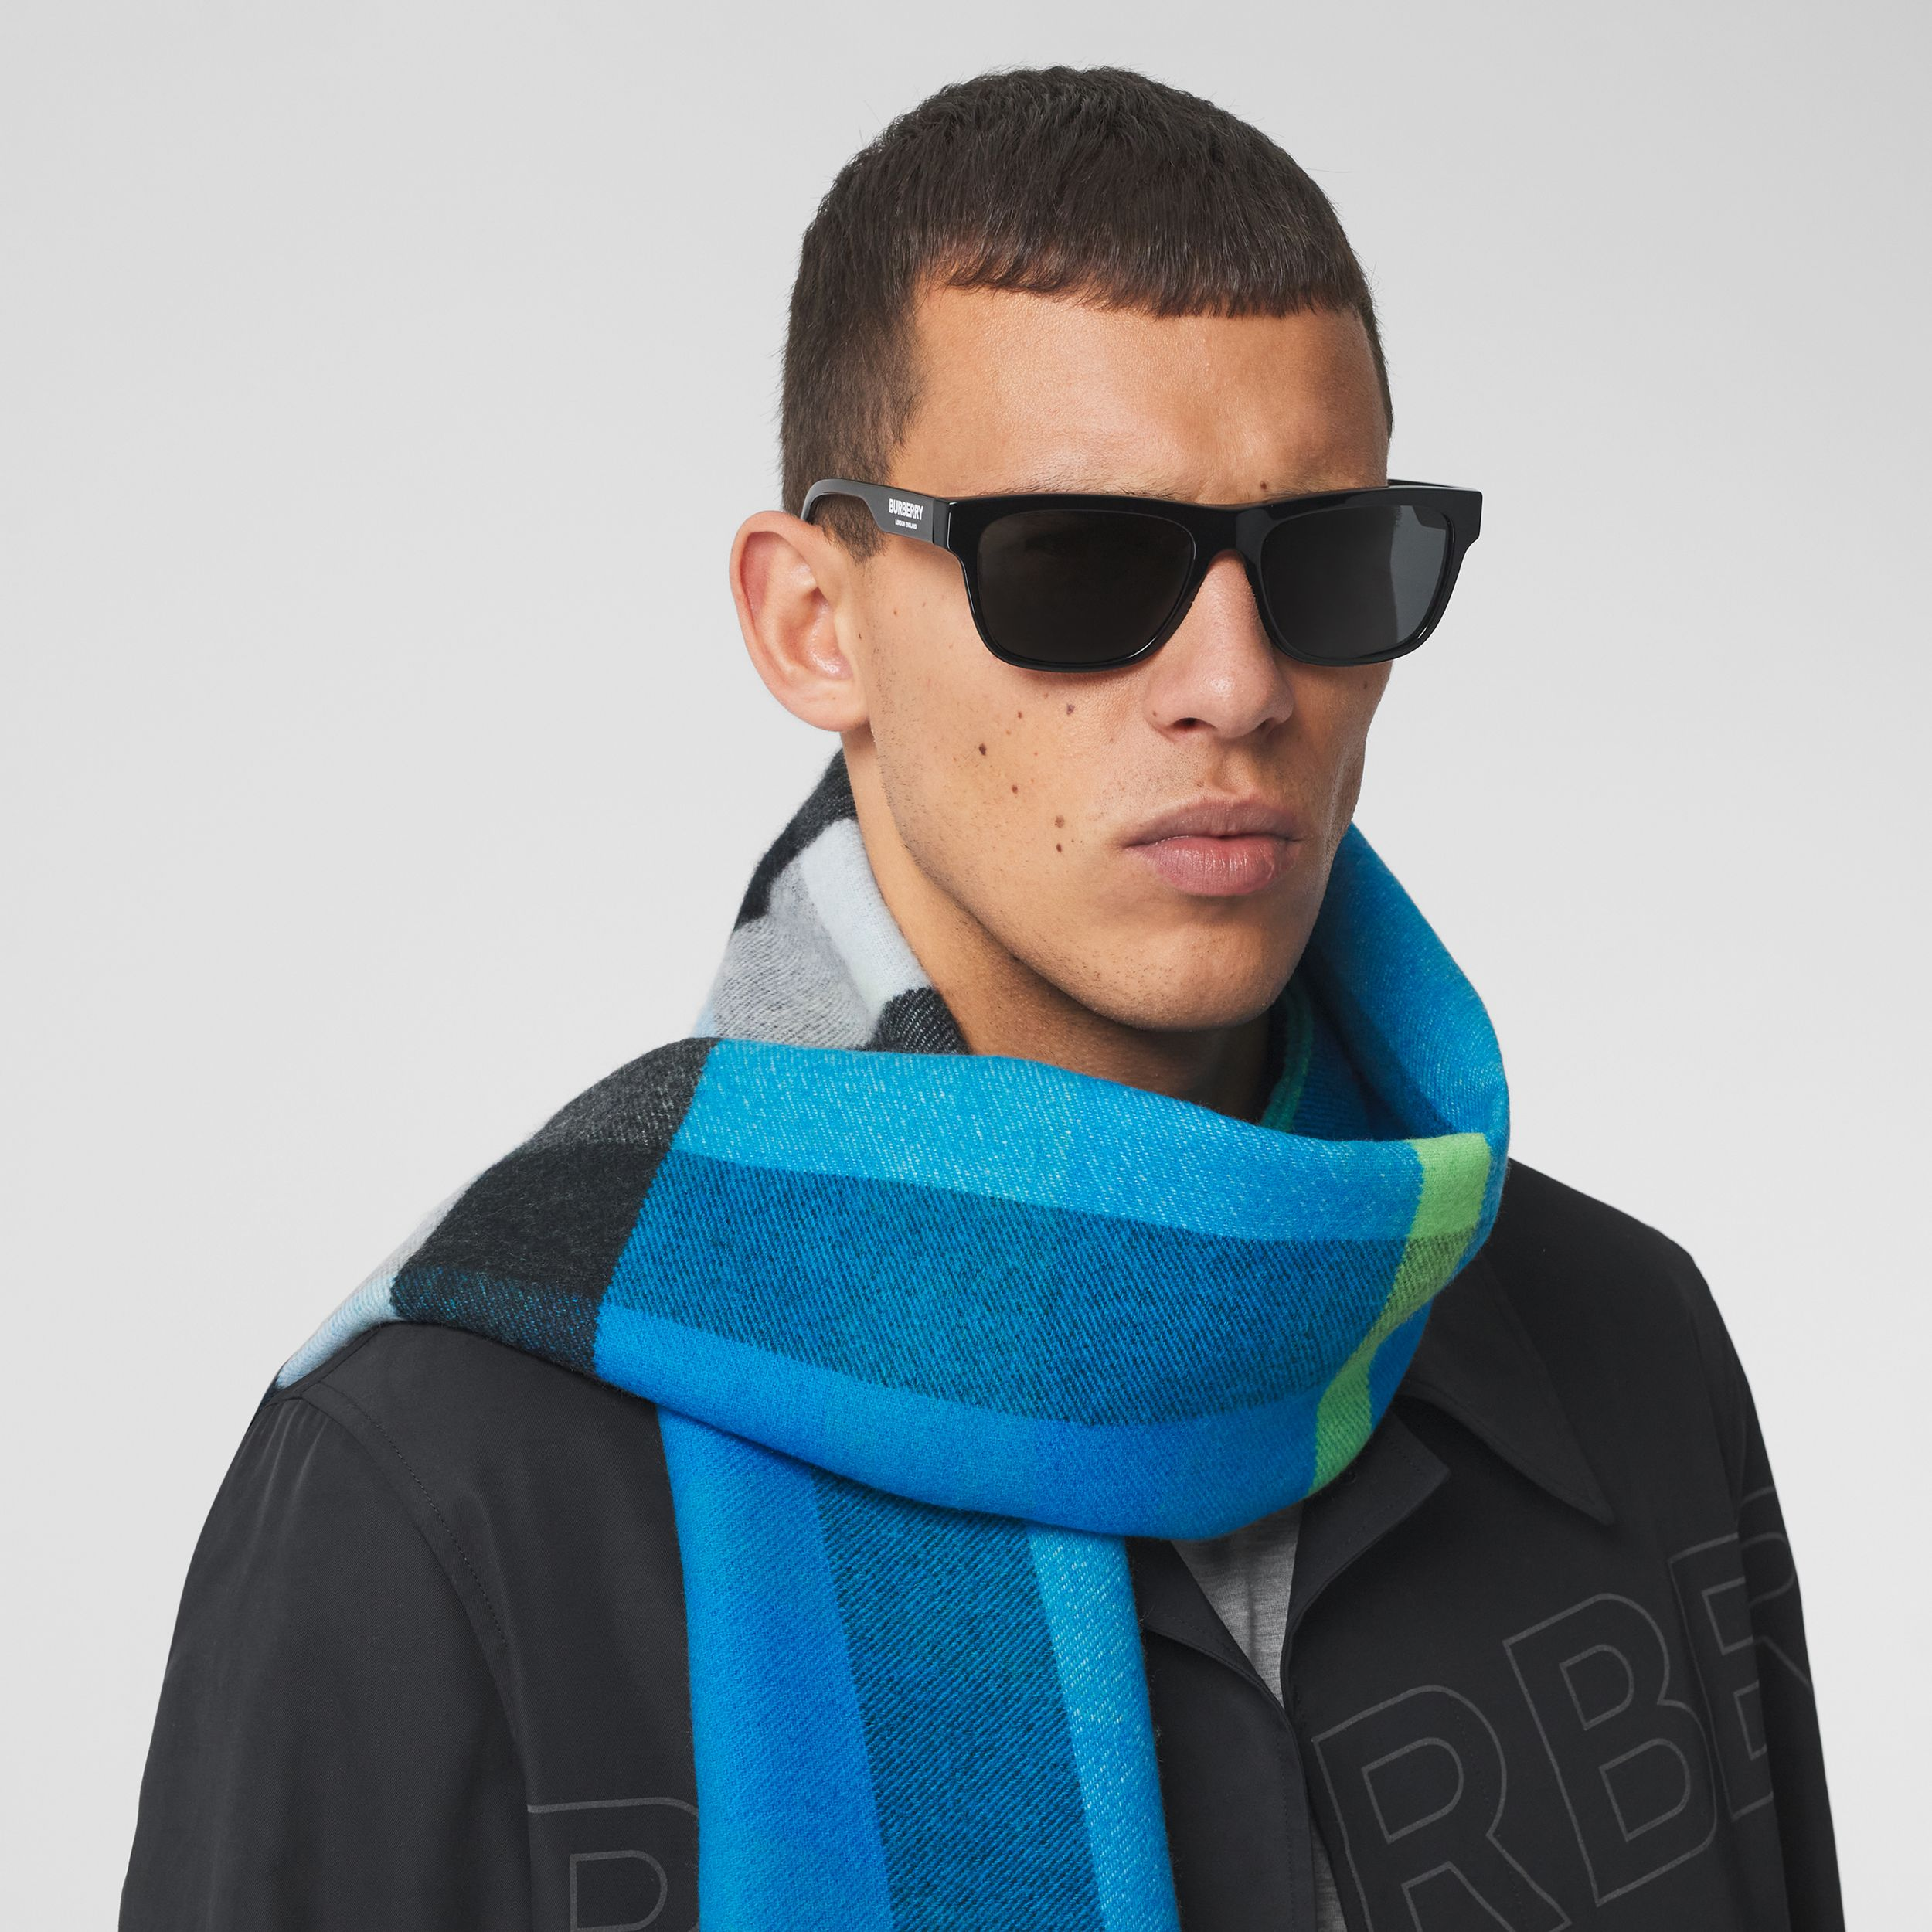 Reversible Check and Logo Cashmere Scarf in Azure Blue | Burberry United Kingdom - 4